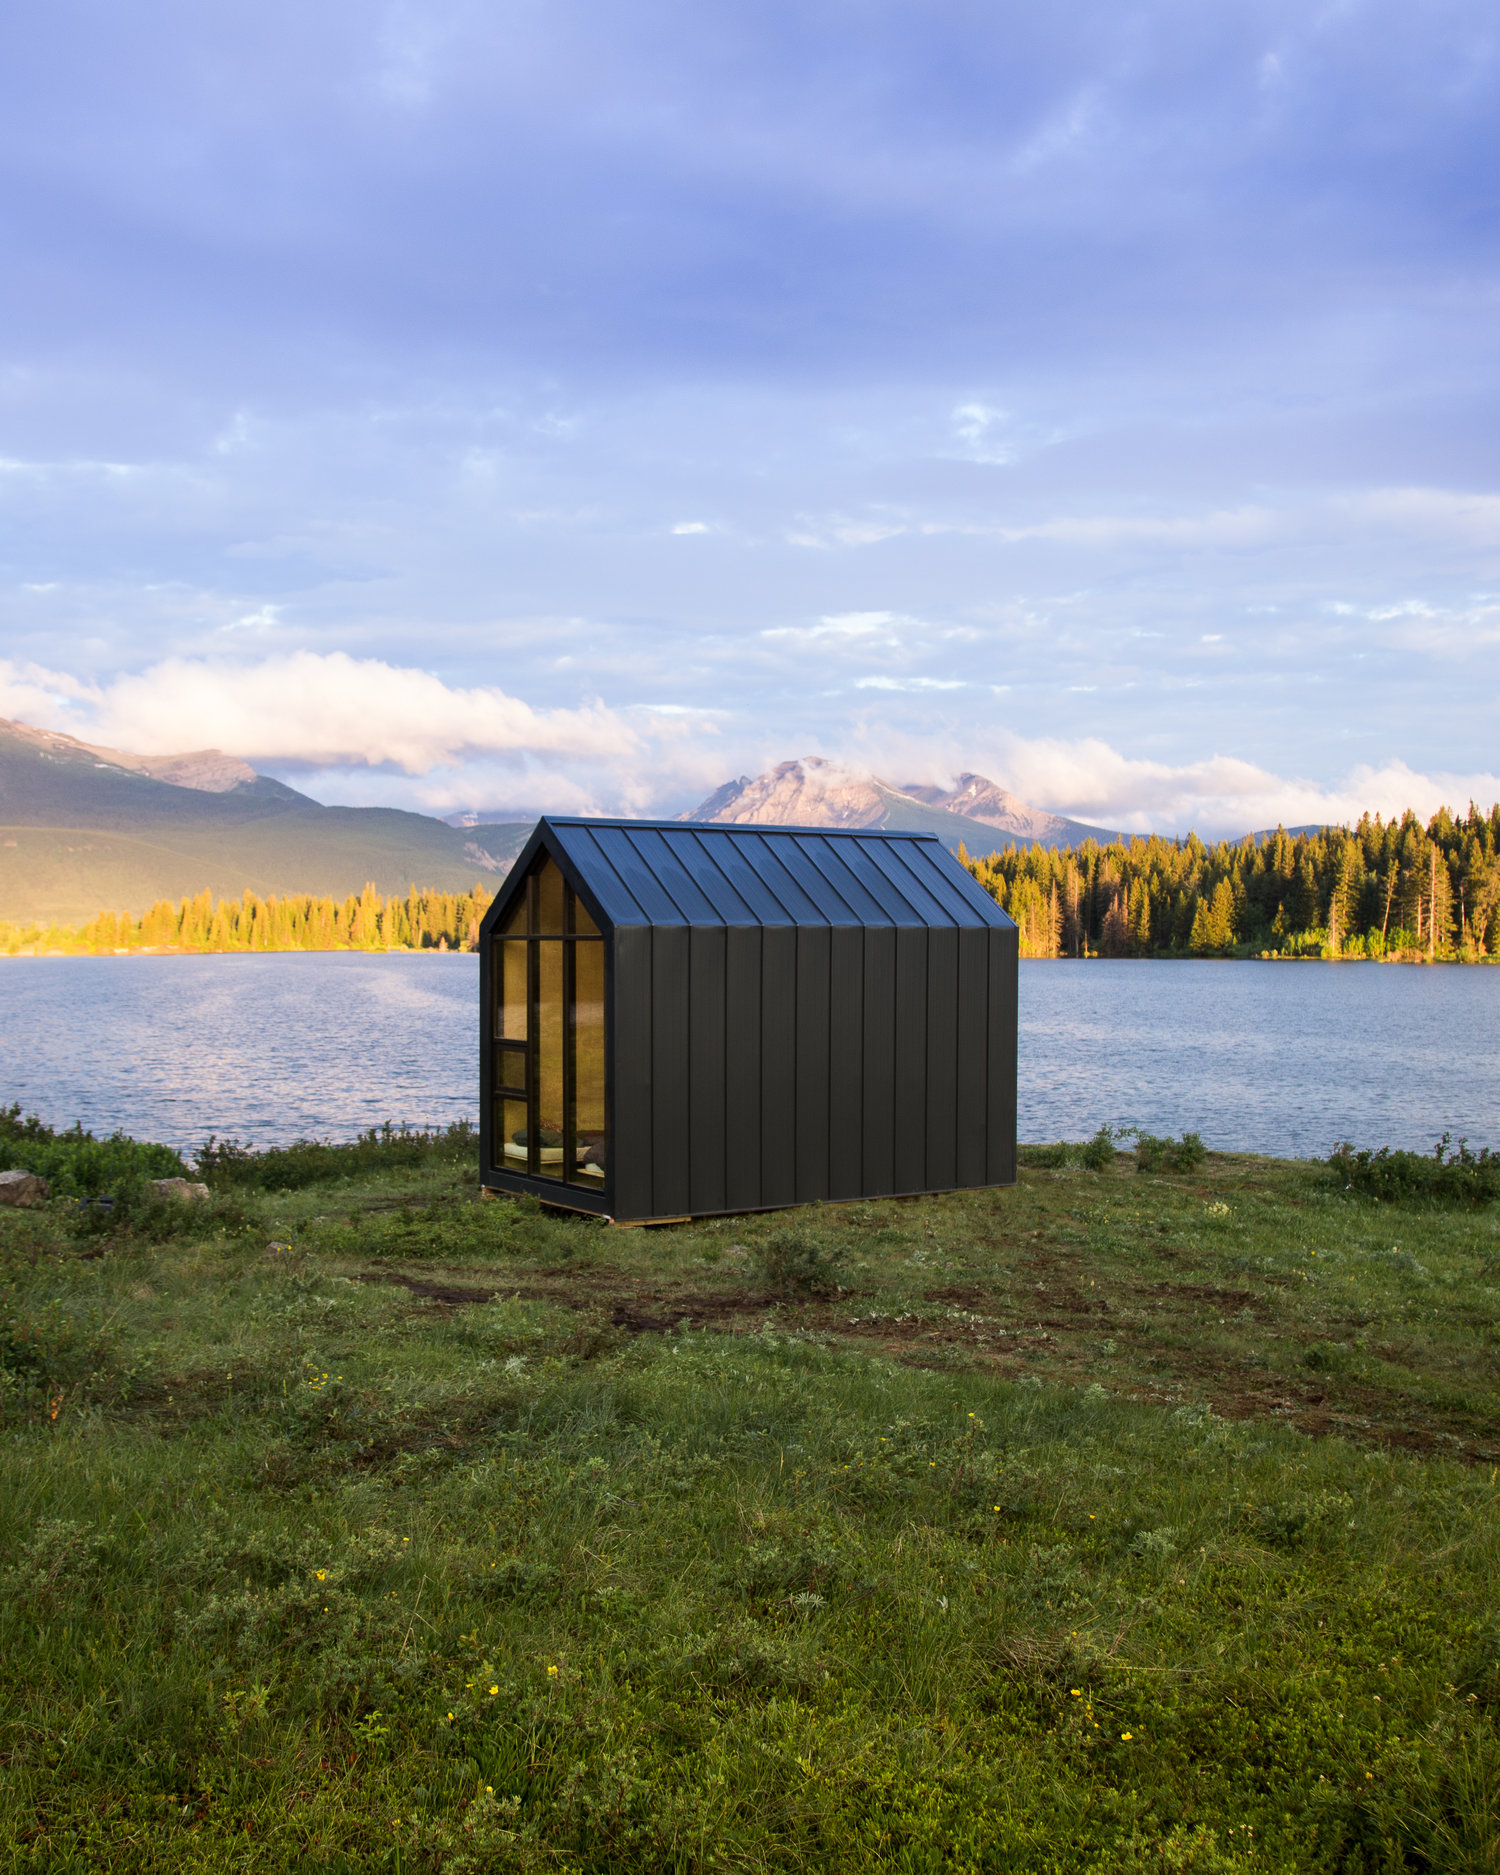 Mono, the perfect prefabricated mini house surrounded by